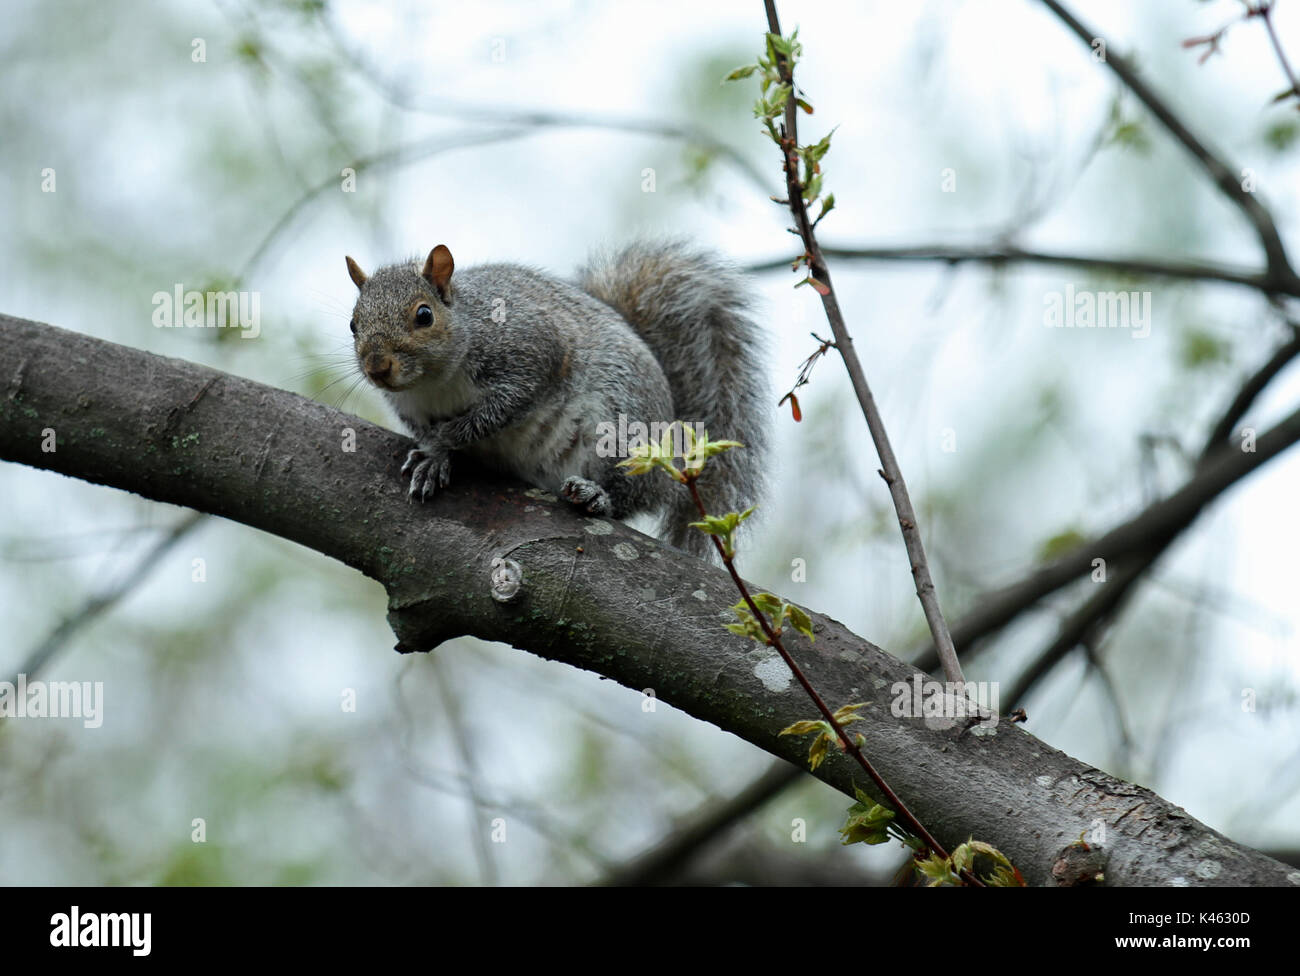 An Eastern gray squirrel (Sciurus carolinensis) resting on a limb of a budding maple tree in spring Stock Photo